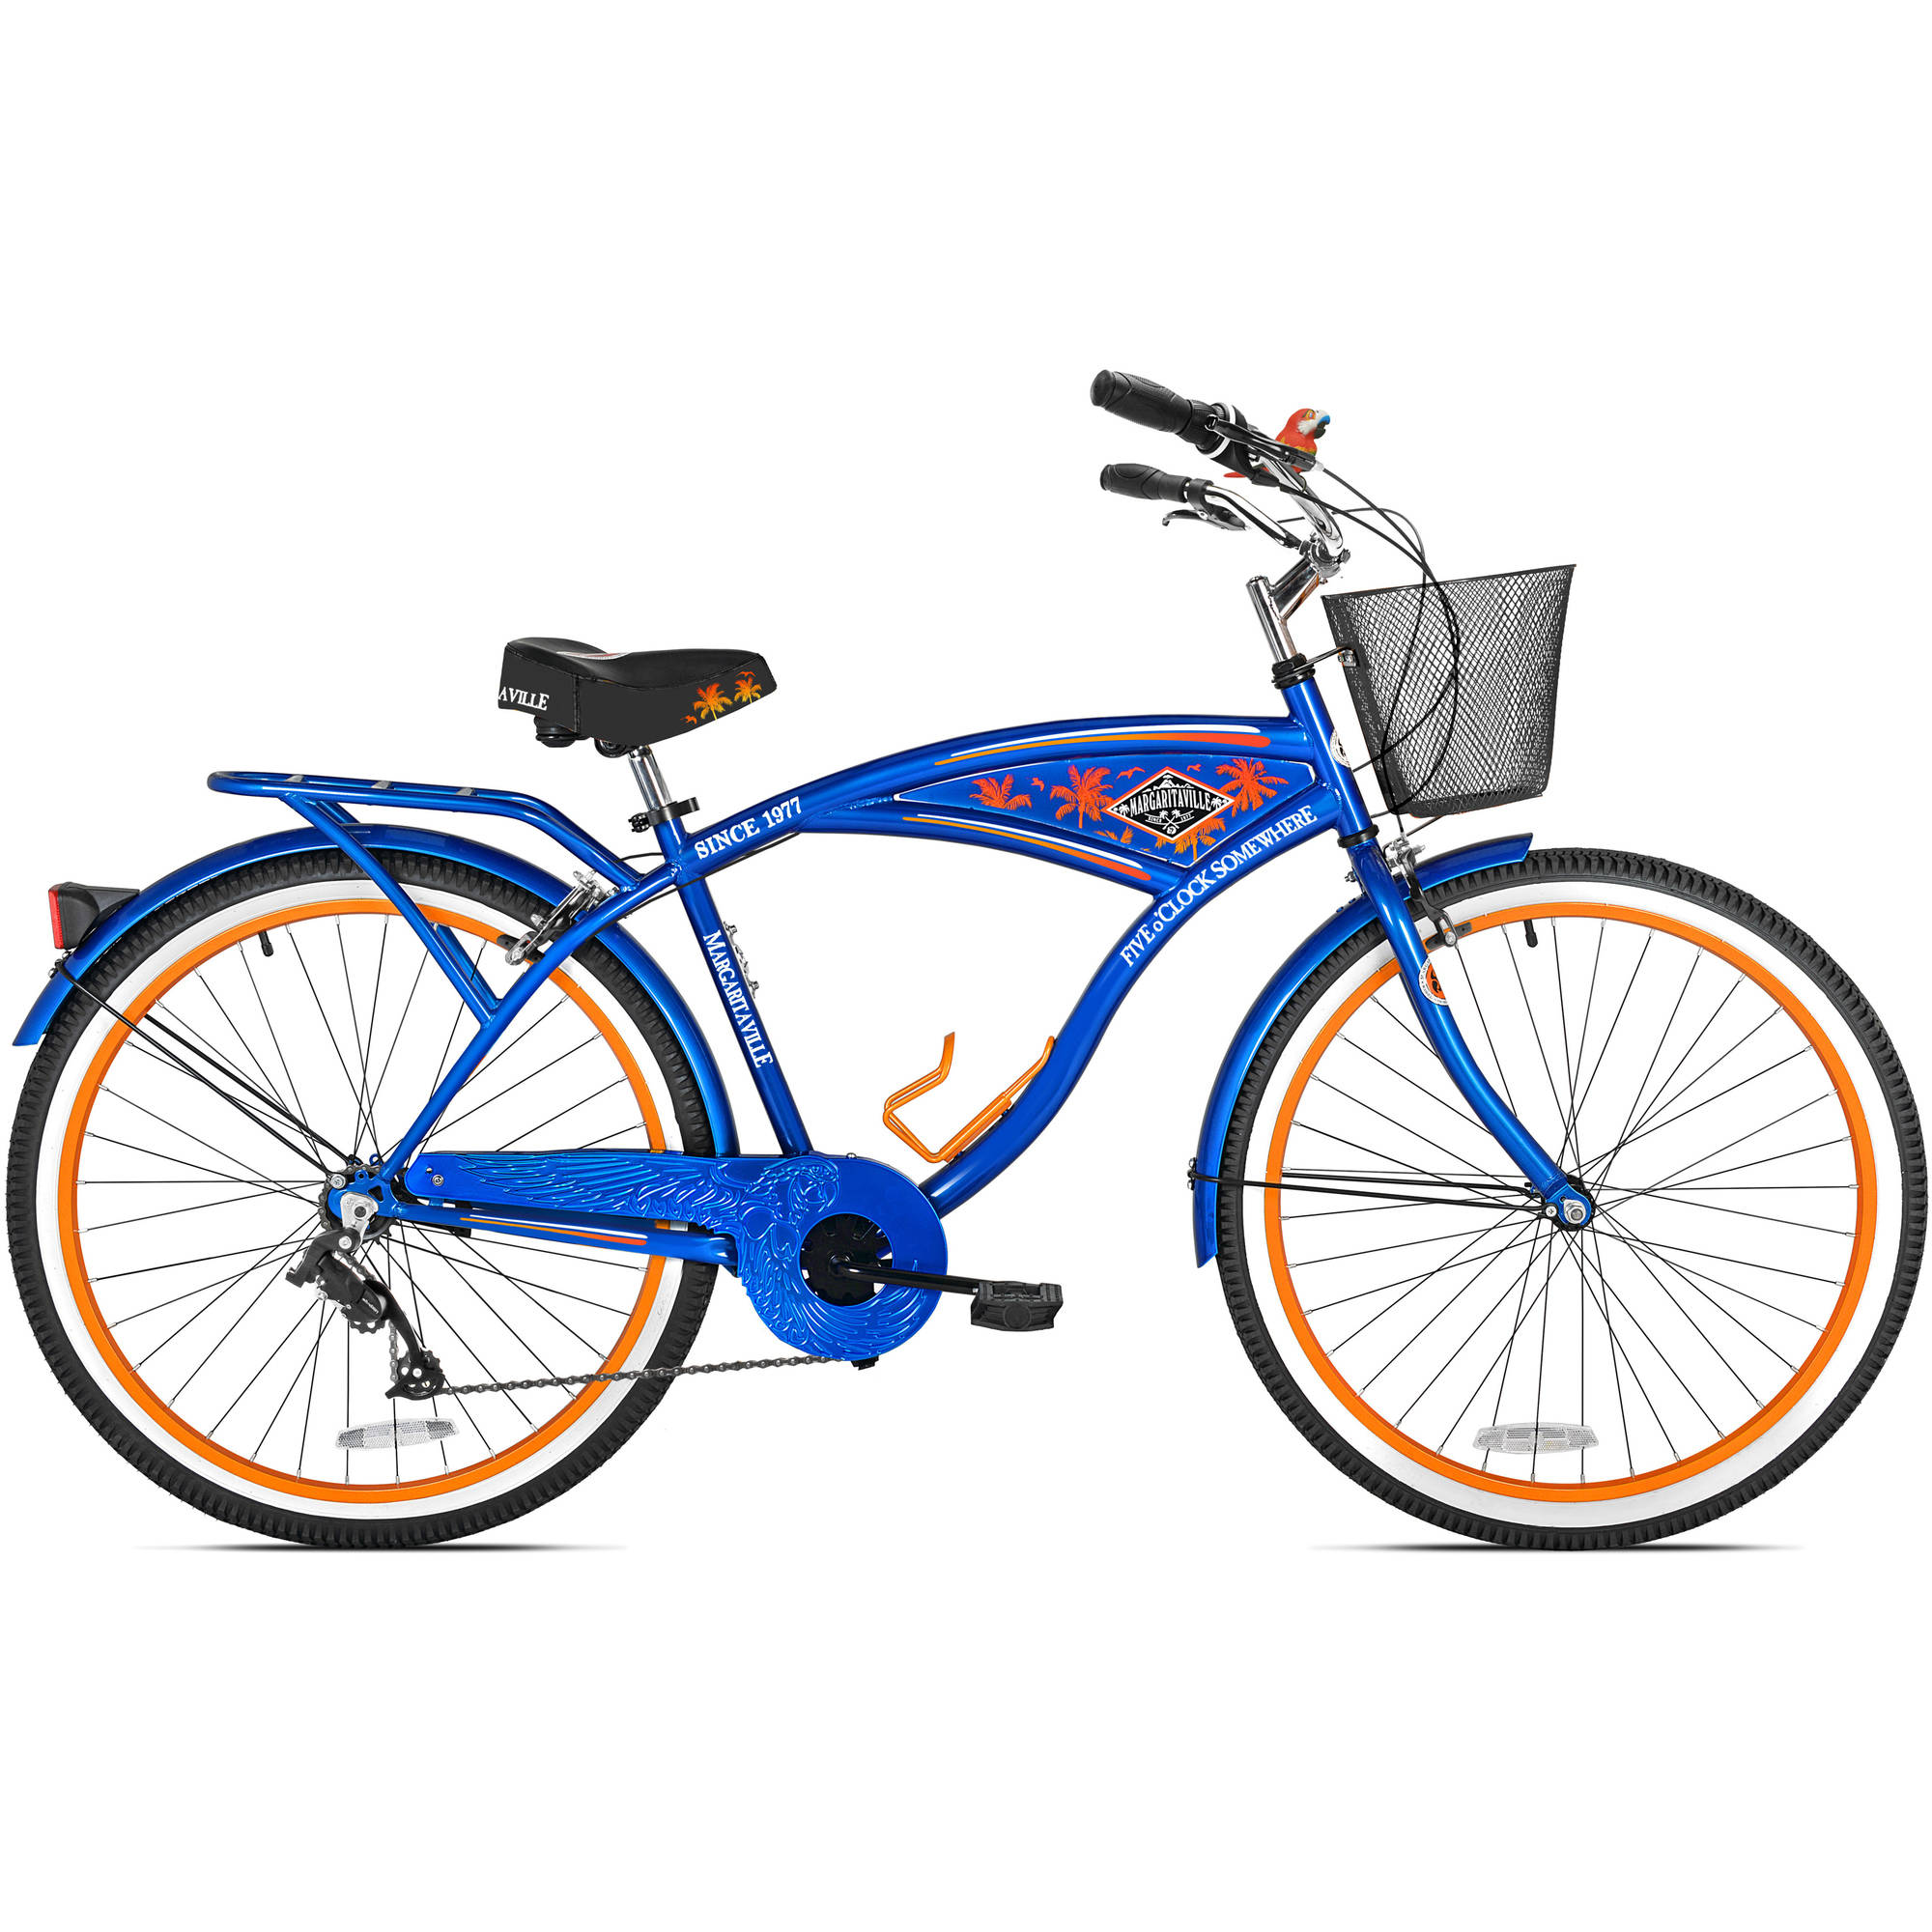 "26"" Men's Margaritaville Multi-Speed Cruiser Bike, Blue"